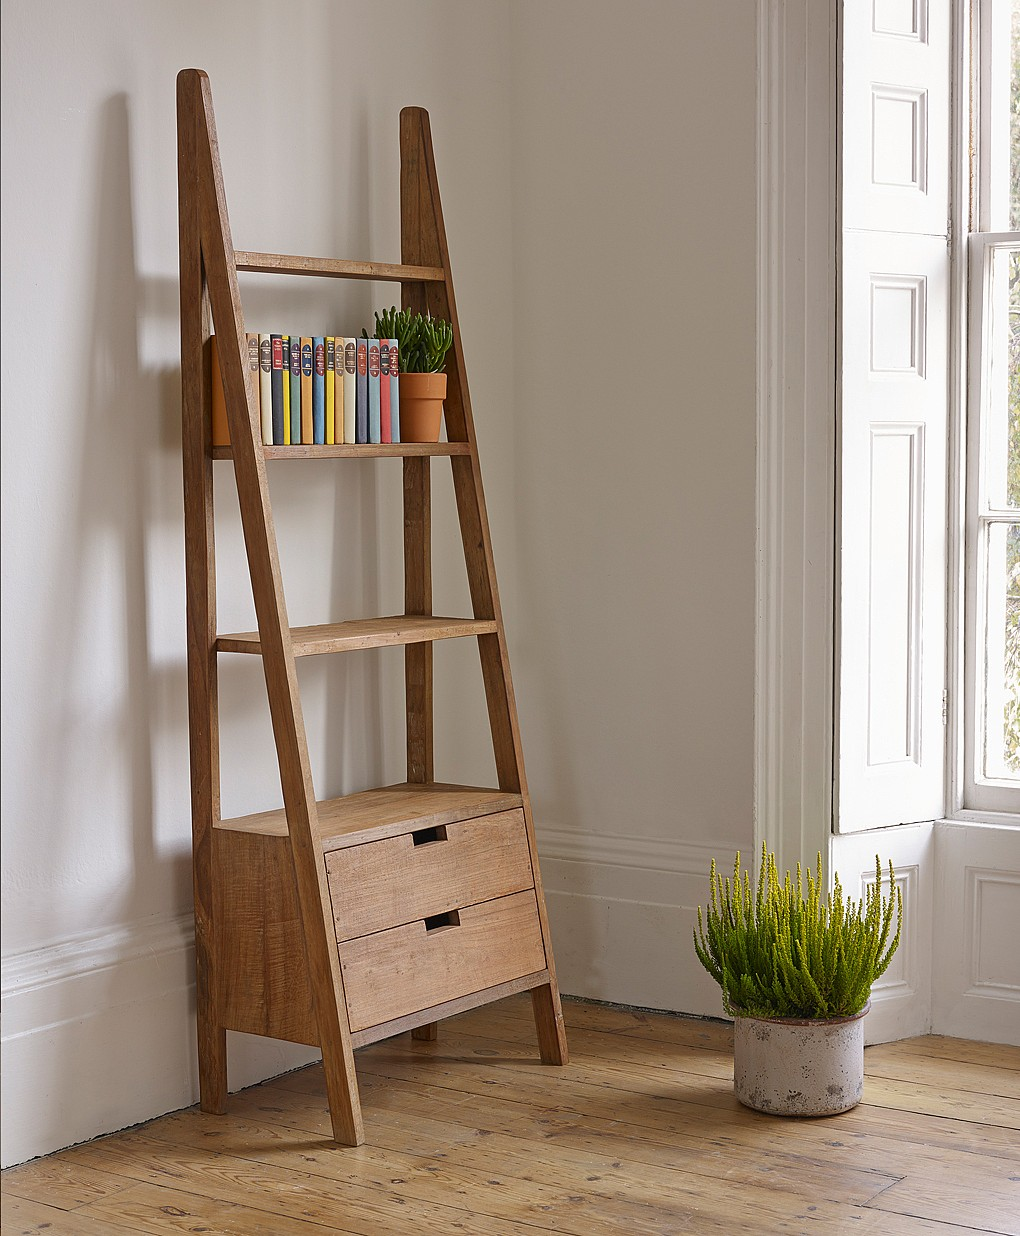 Outstanding Storage Ideas with a Ladder Shelving Unit ...